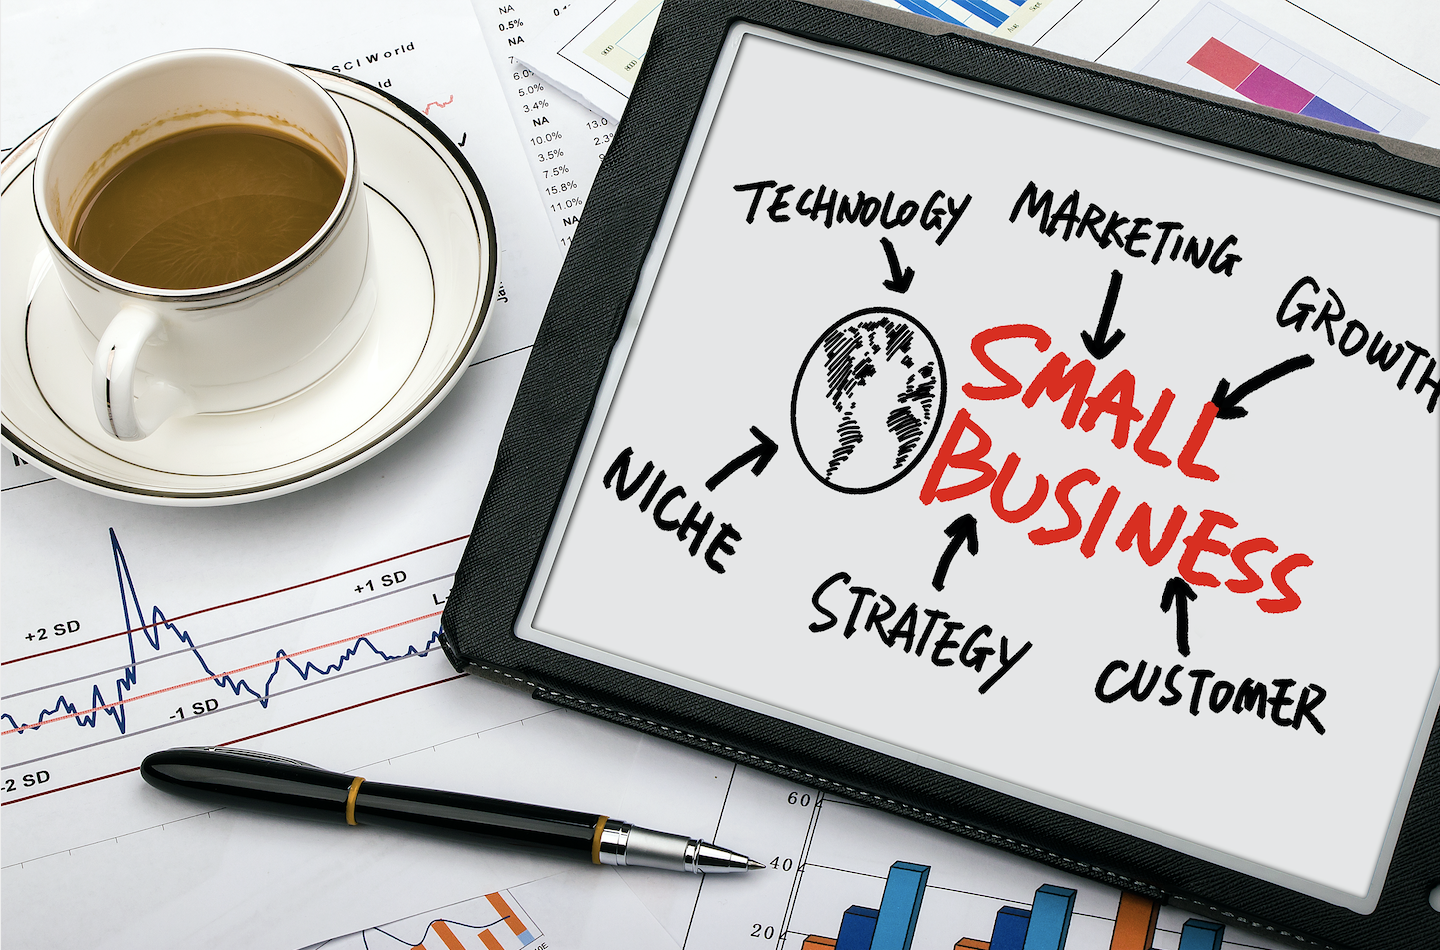 10 Essential Marketing Tips for Small Business